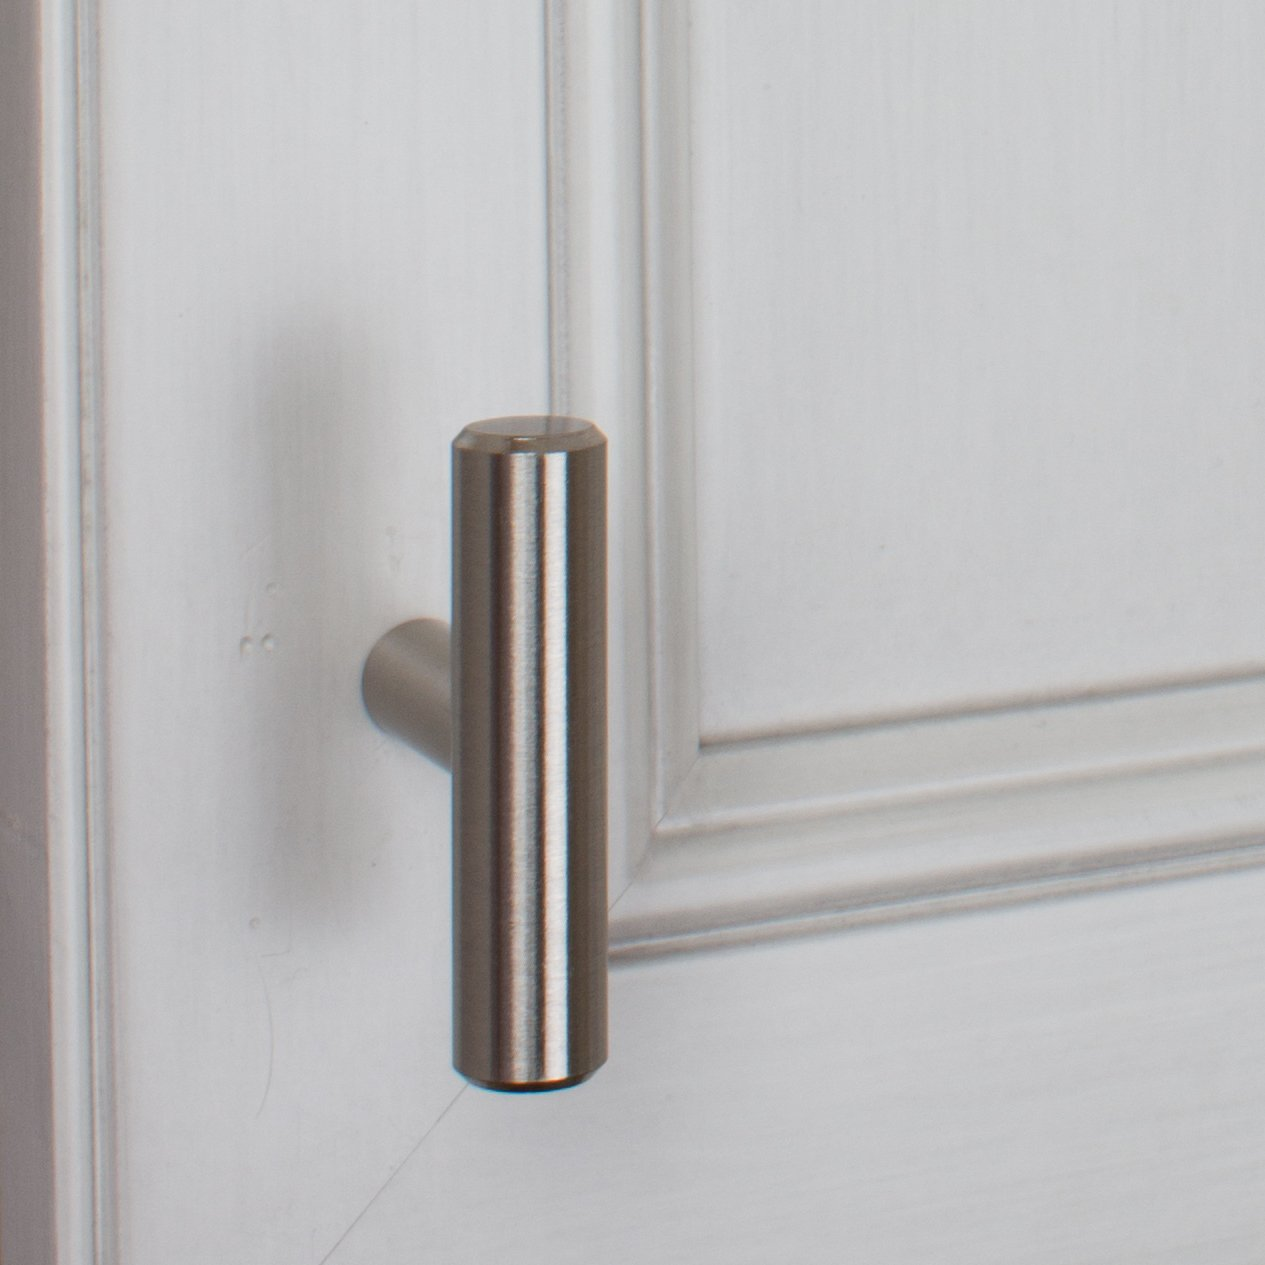 GlideRite Hardware 5002-T-SS-100 2 inch Stainless steel Solid T bar Handle Knobs 100 Pack by GlideRite Hardware (Image #4)